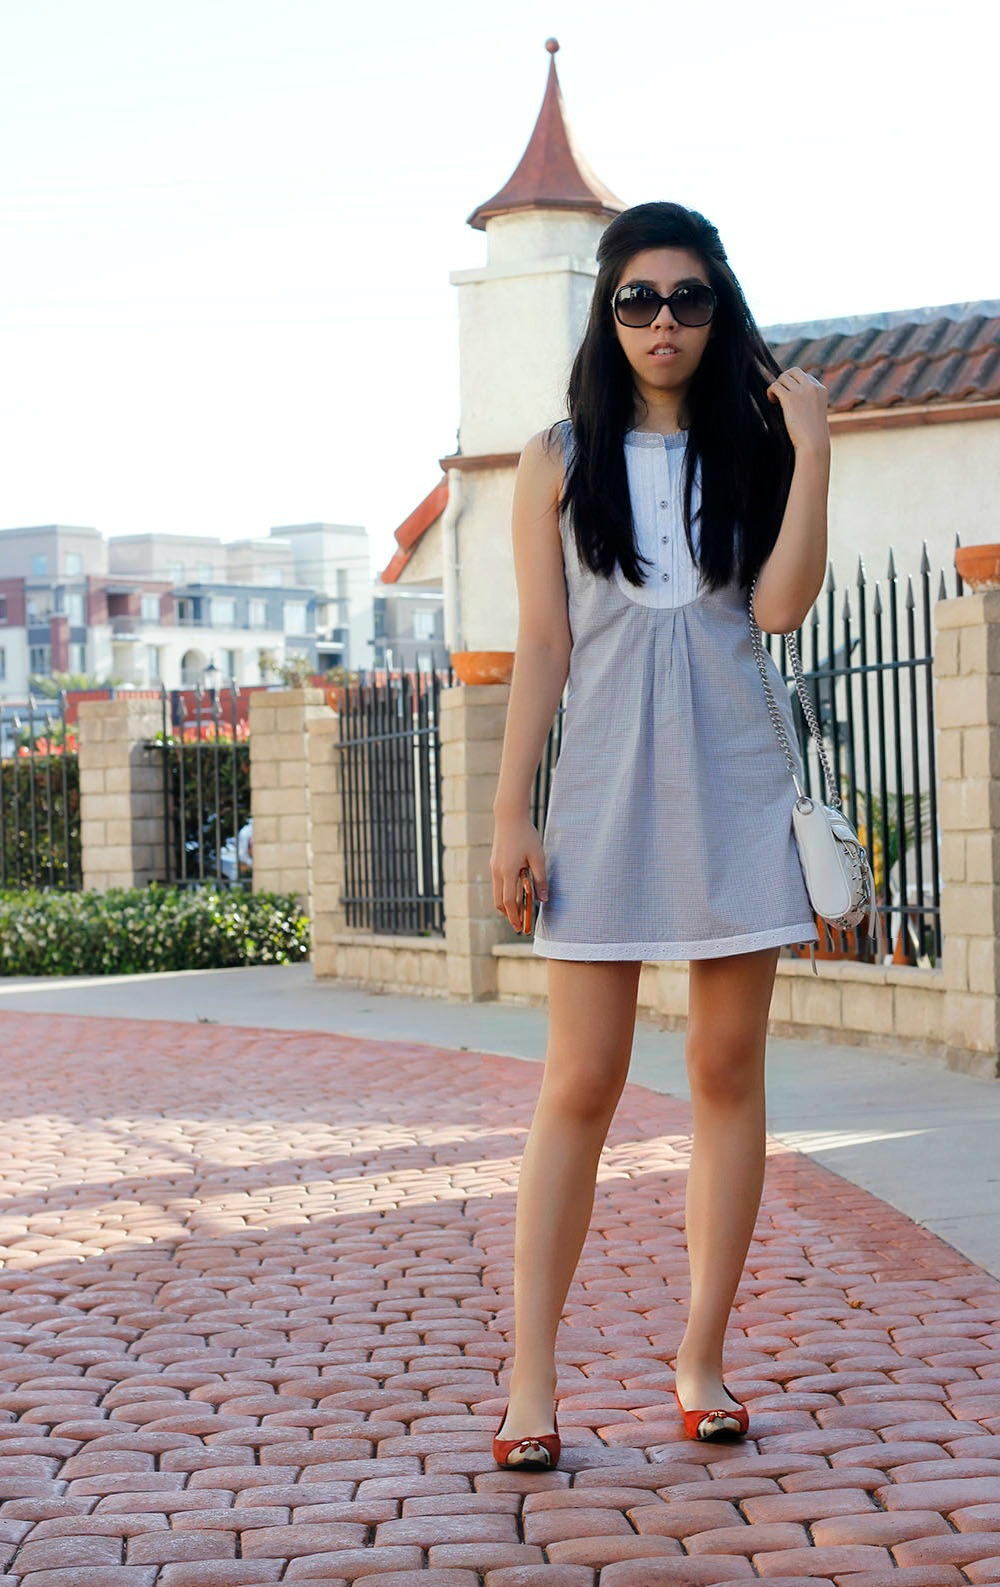 Casual What to Wear to School Look _ First Day of School_Adrienne Nguyen_Invictus